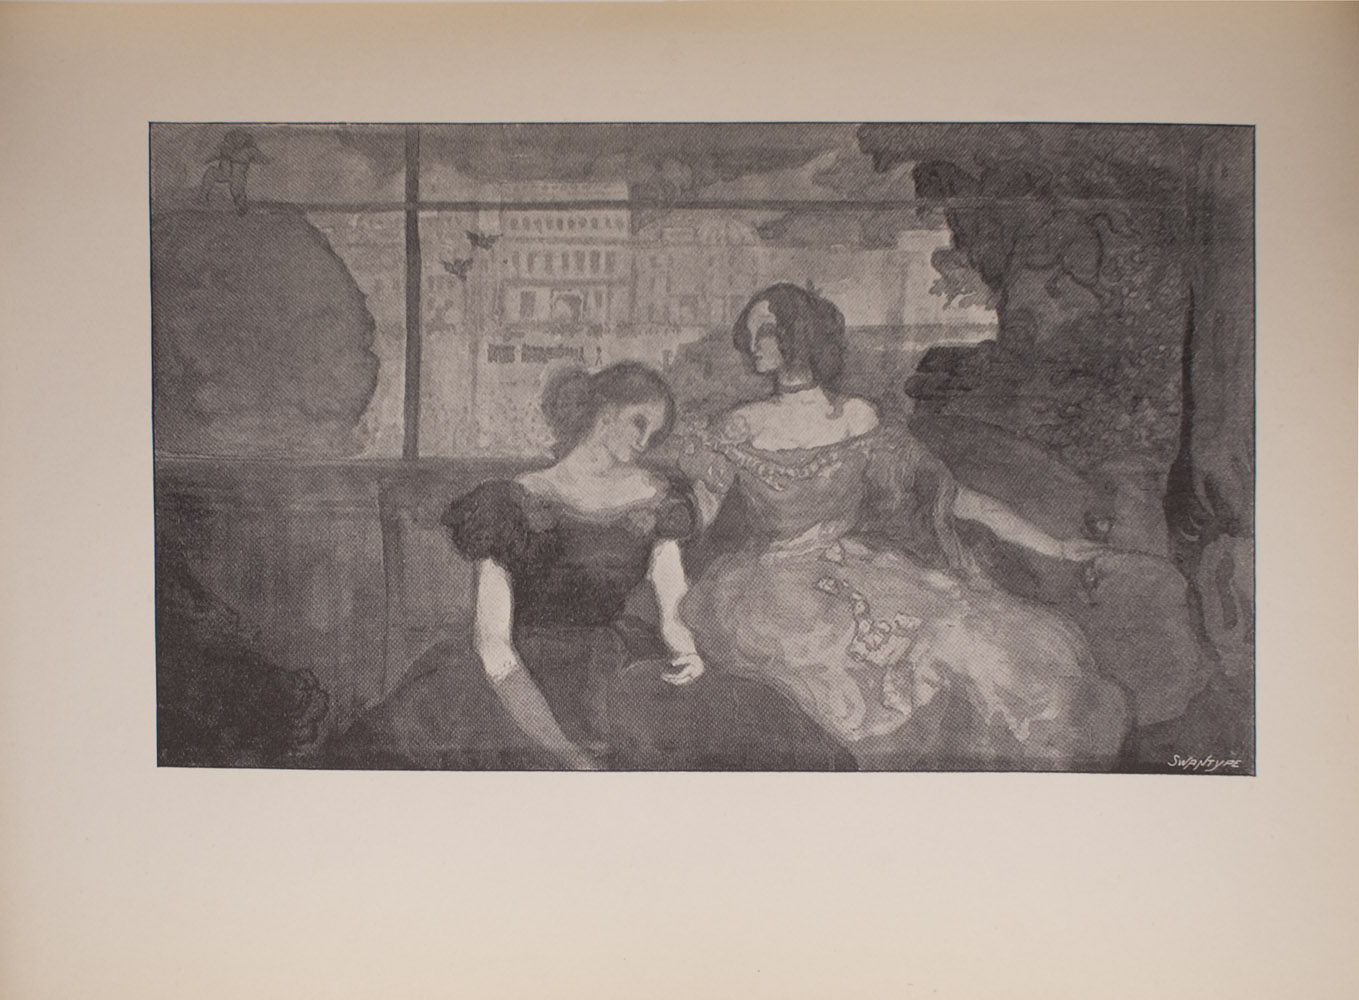 The image is of two women who are both seated The woman on the left sits lower than the woman on the right The woman on the left is wearing a dark evening gown while the woman on the right is wearing a lighter gown The woman on the right is wearing a choker around her neck and is looking to the viewer s left The woman on the left is looking down and to the viewer s right In the background of the image there are buildings There are lines that cut through the image both vertically and horizontally which may indicate a window behind the seated women The horizontal line could also be a type of beam or tightrope In the left side of the background there is a figure gender unknown that appears to be balancing on the horizontal beam or rope above a tree The image is horizontally displayed